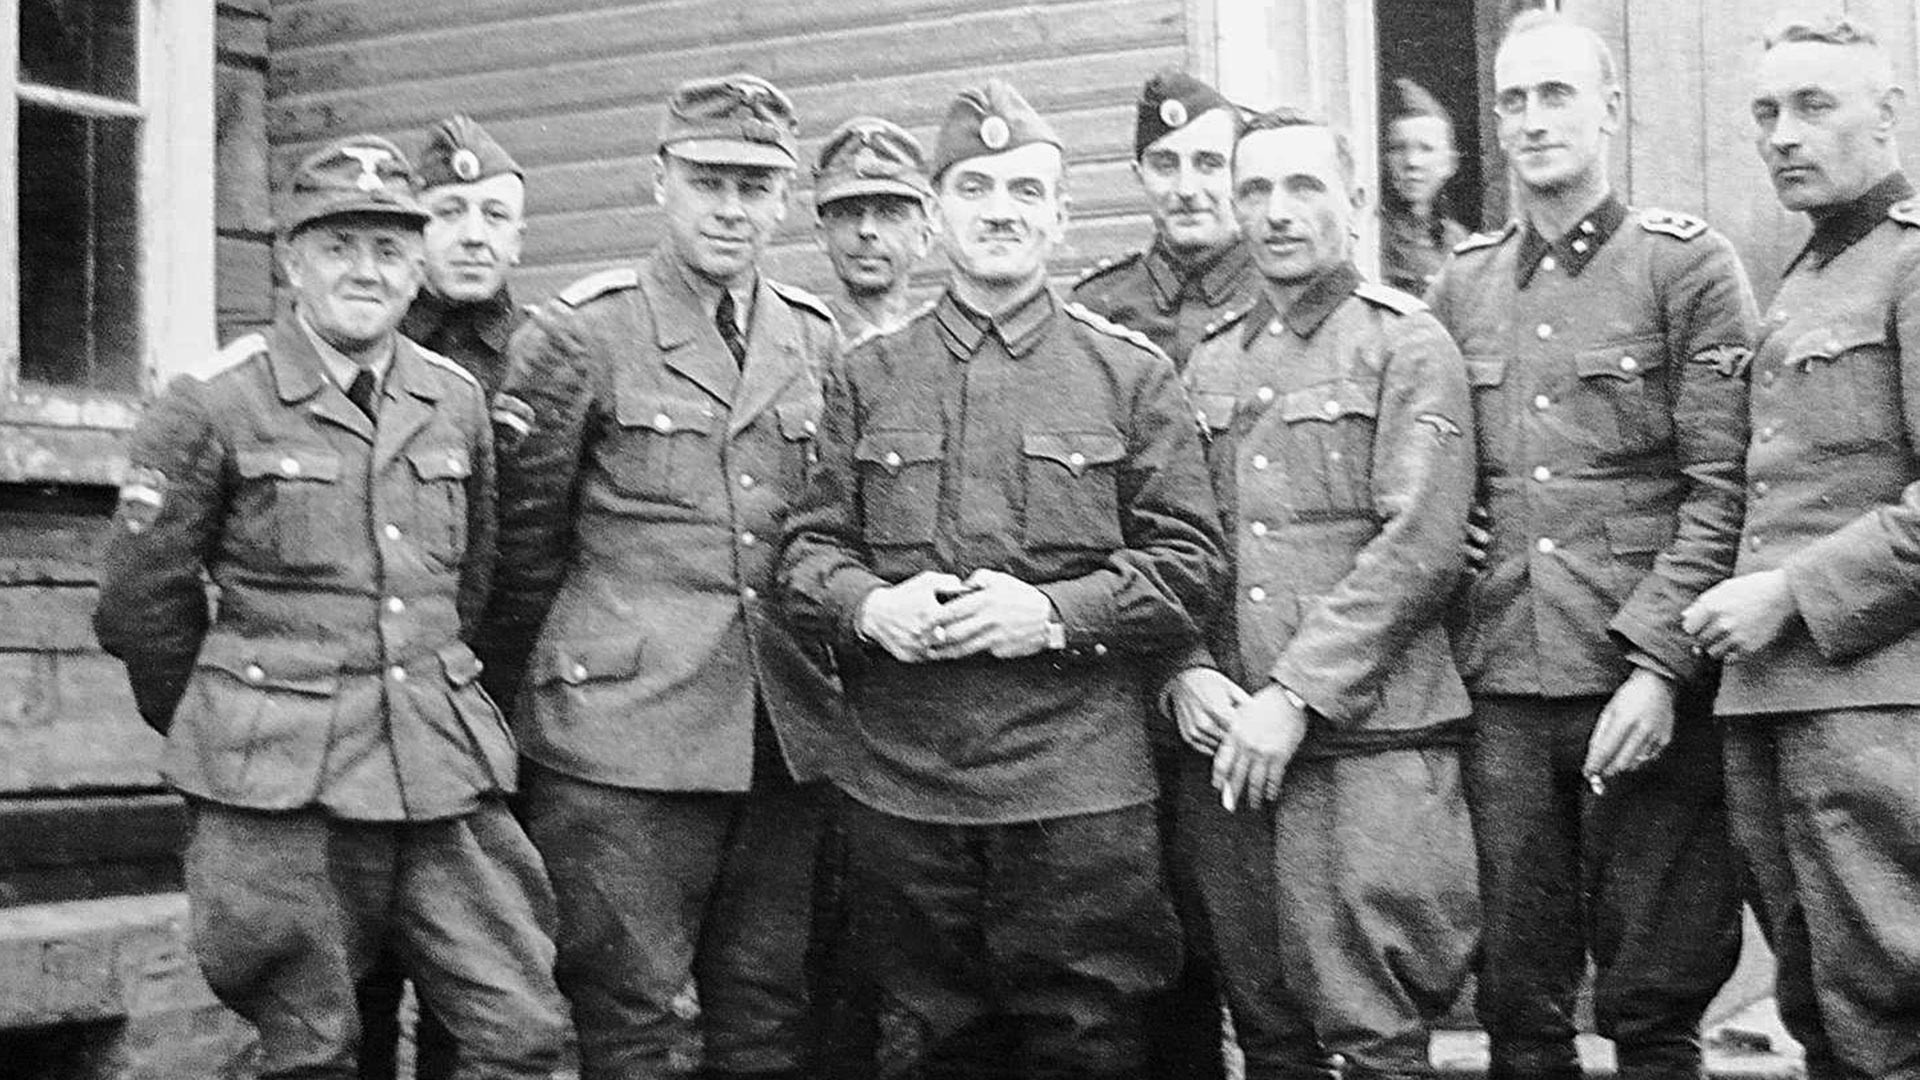 Colonel Constantine Kromiadi (C), Vladimir Gil (next to him), and officers of the Druzhina brigade.